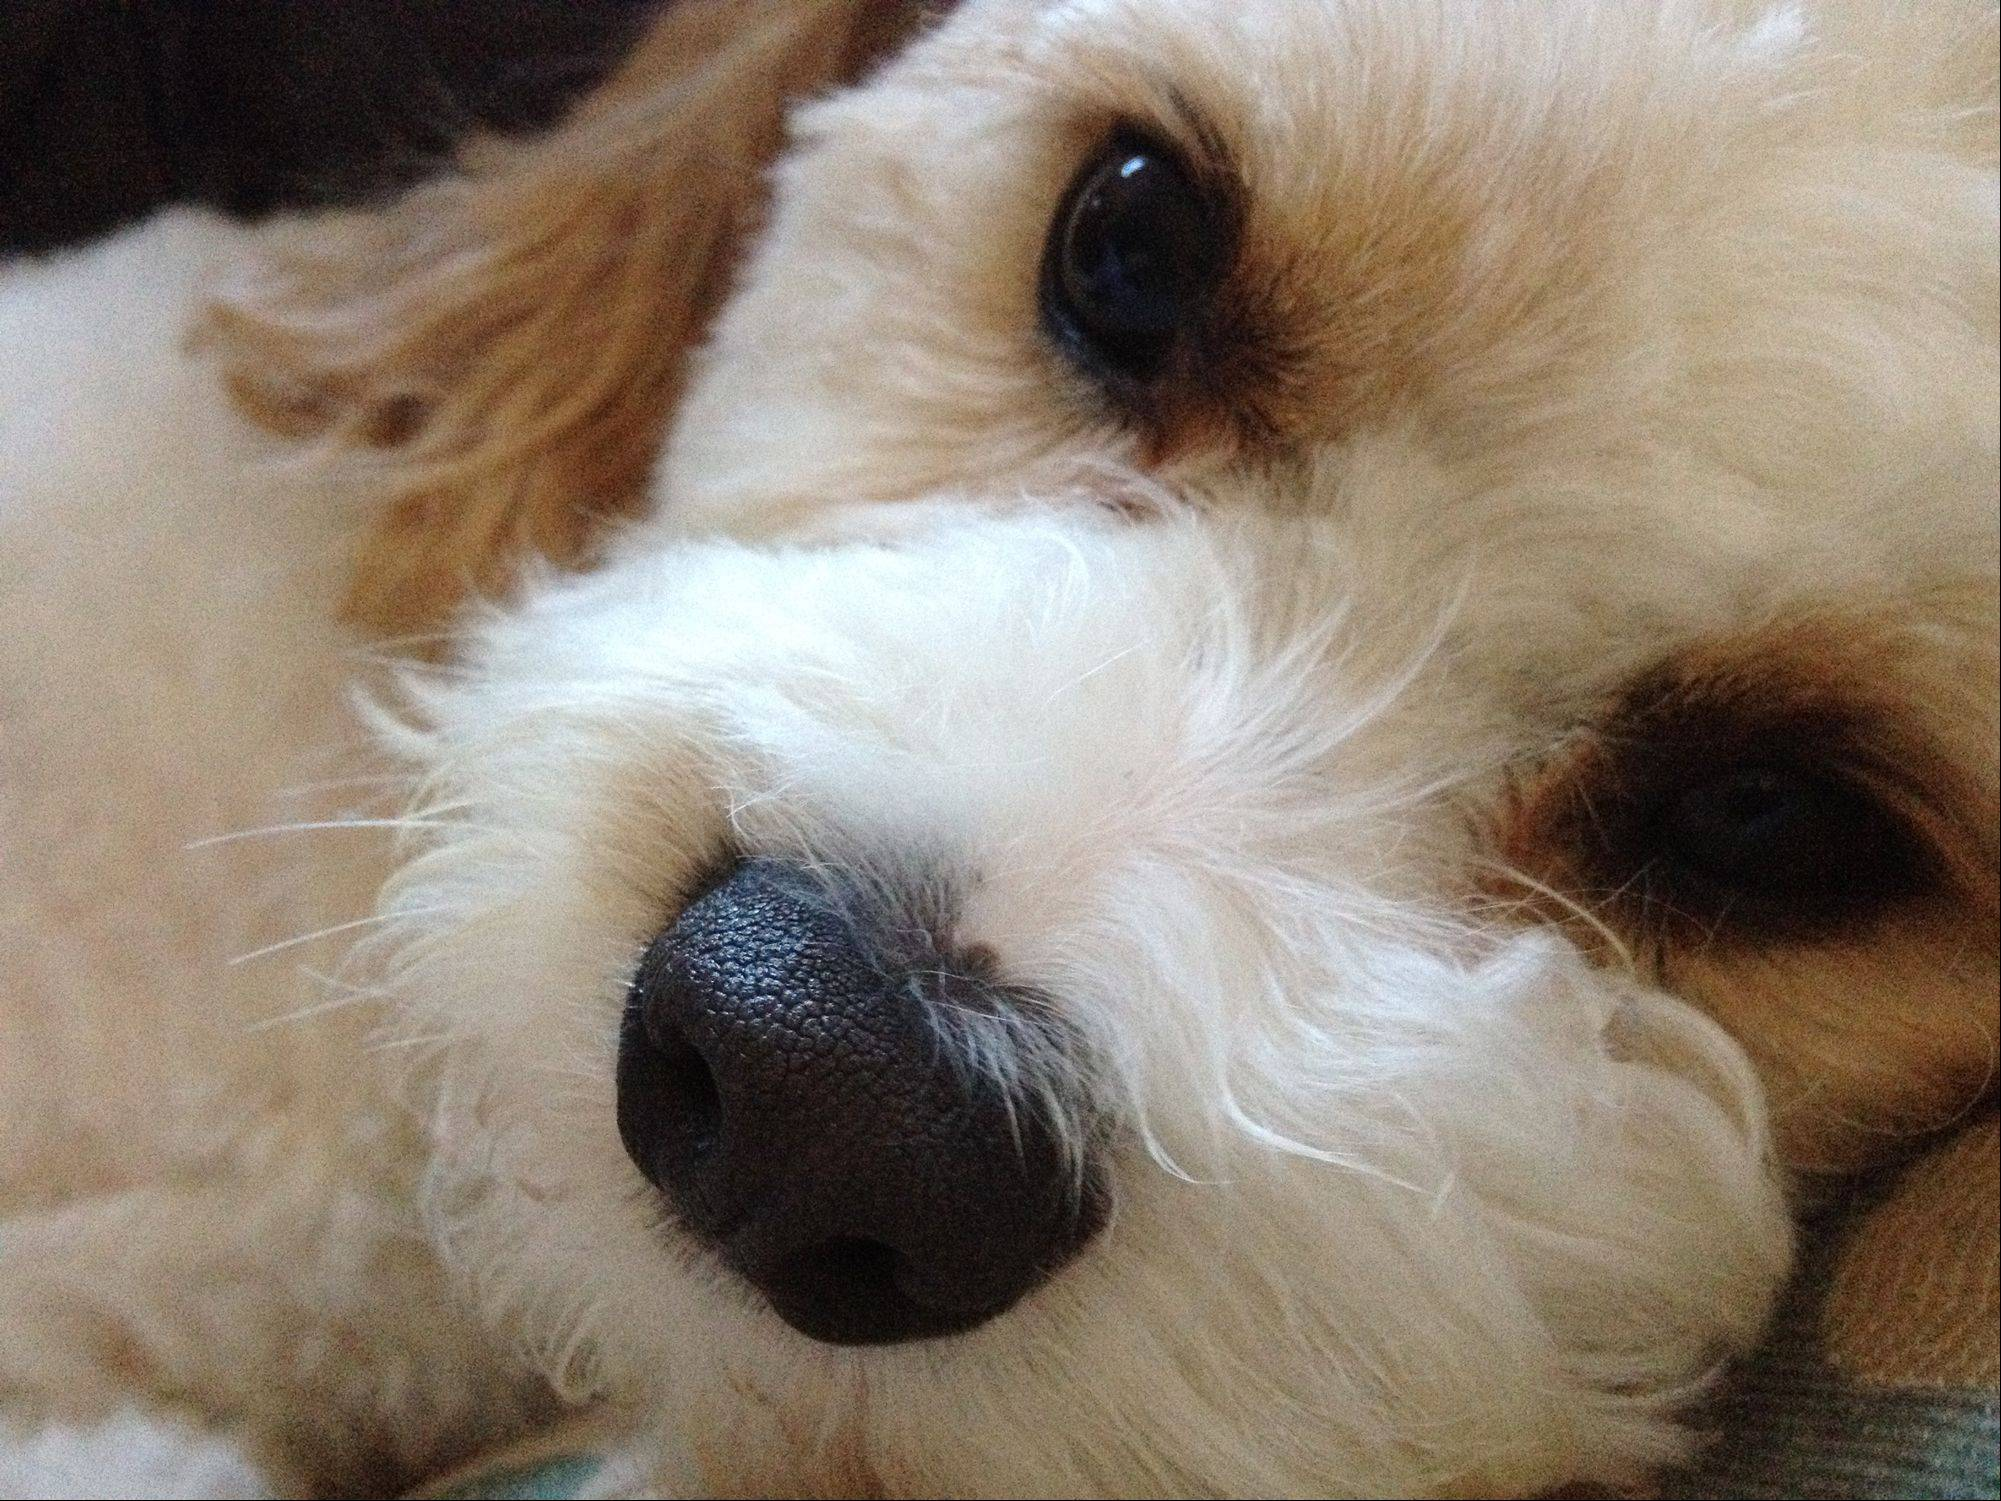 Illinois may rank low in pet ownership, but the Daily Herald ranks high. Here is photo editor Jeff Knox's Sam, a 4-year-old Cavachon dog.